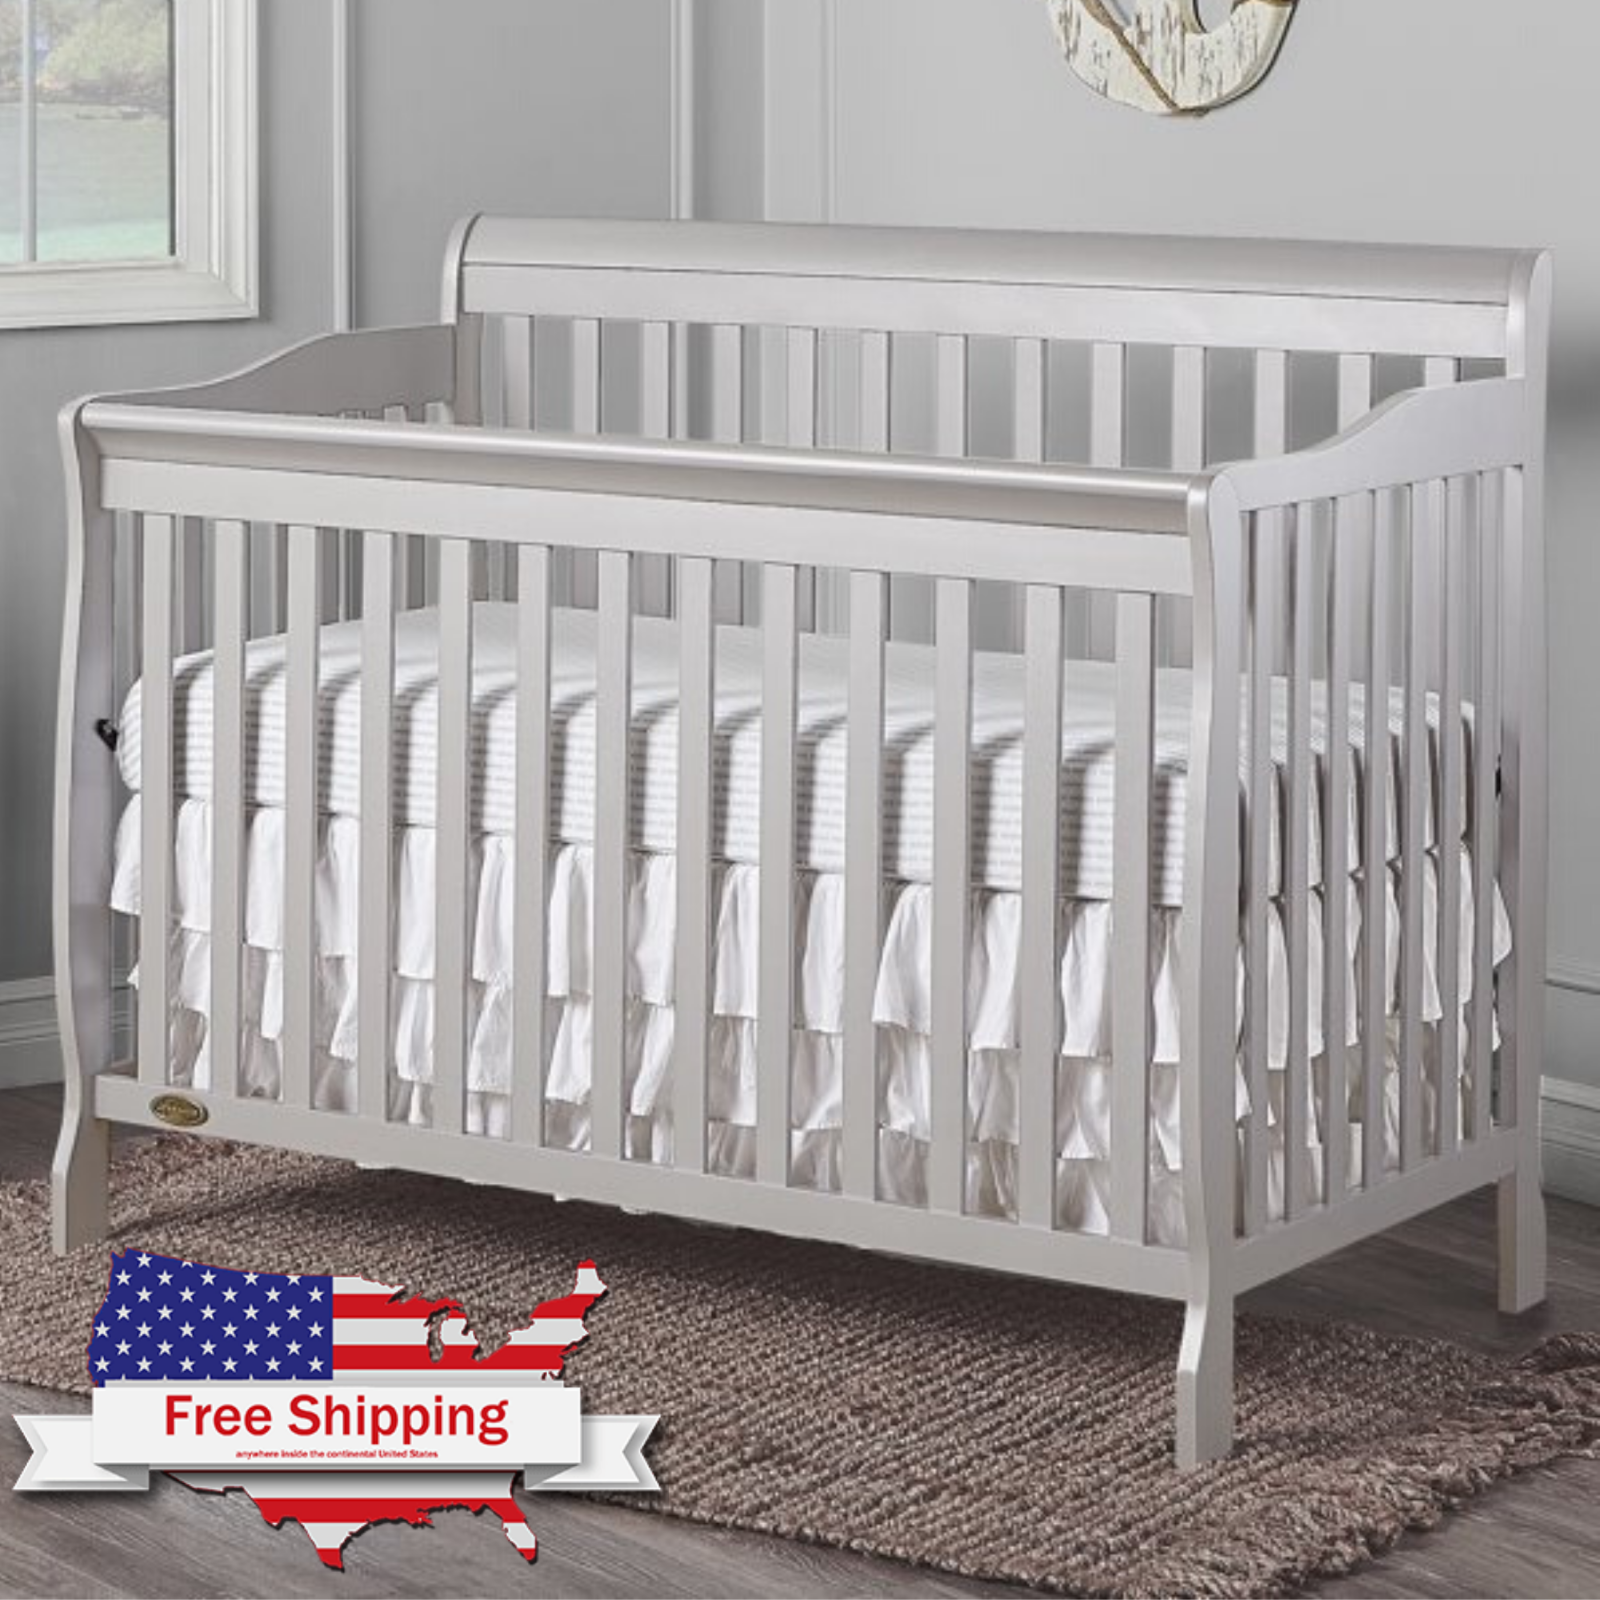 5-in-1 Convertible Baby Bed Full Size Crib Black Nursery Bed